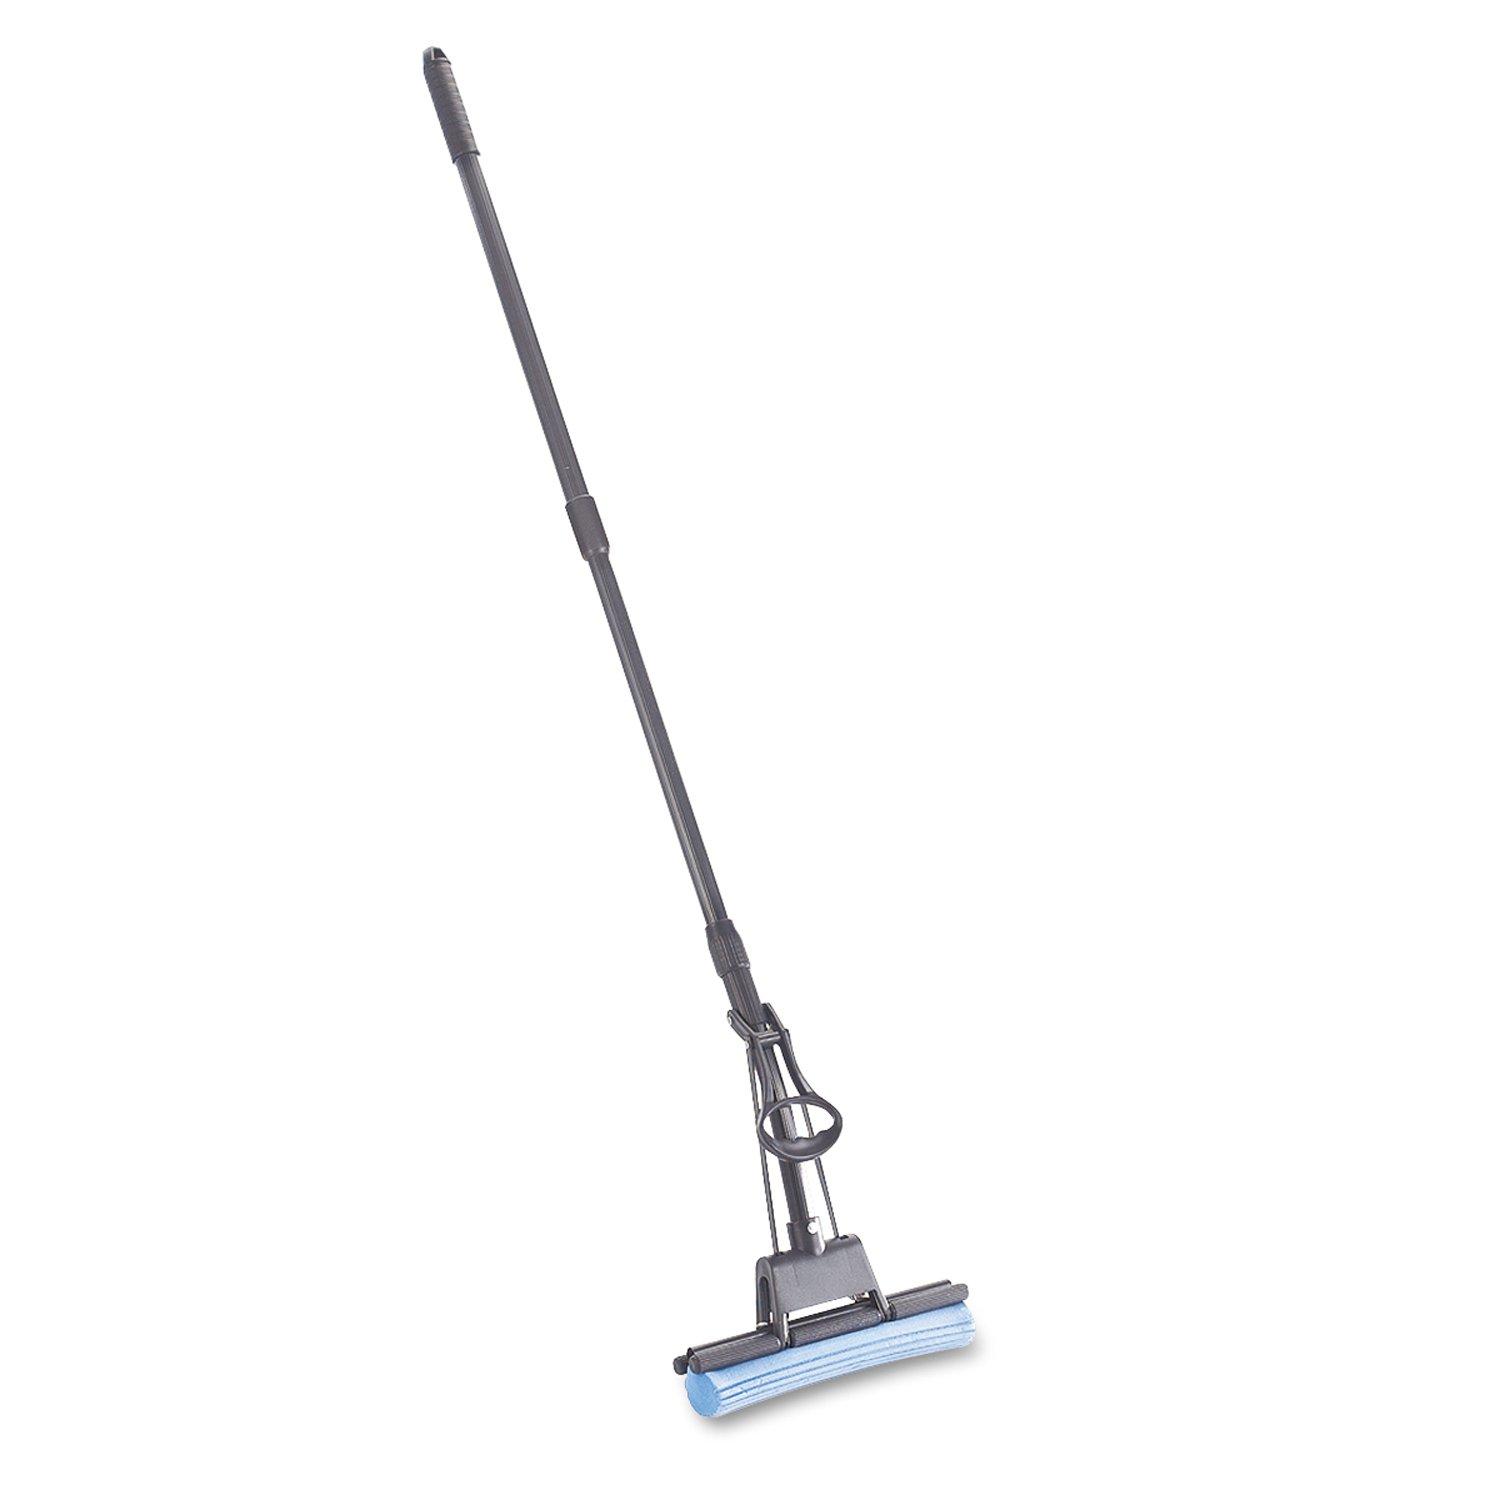 Rubbermaid Commercial G780-04 RCPG780CT PVA Sponge Mop with Wringer Lever, Blue Head, (Pack of 4)